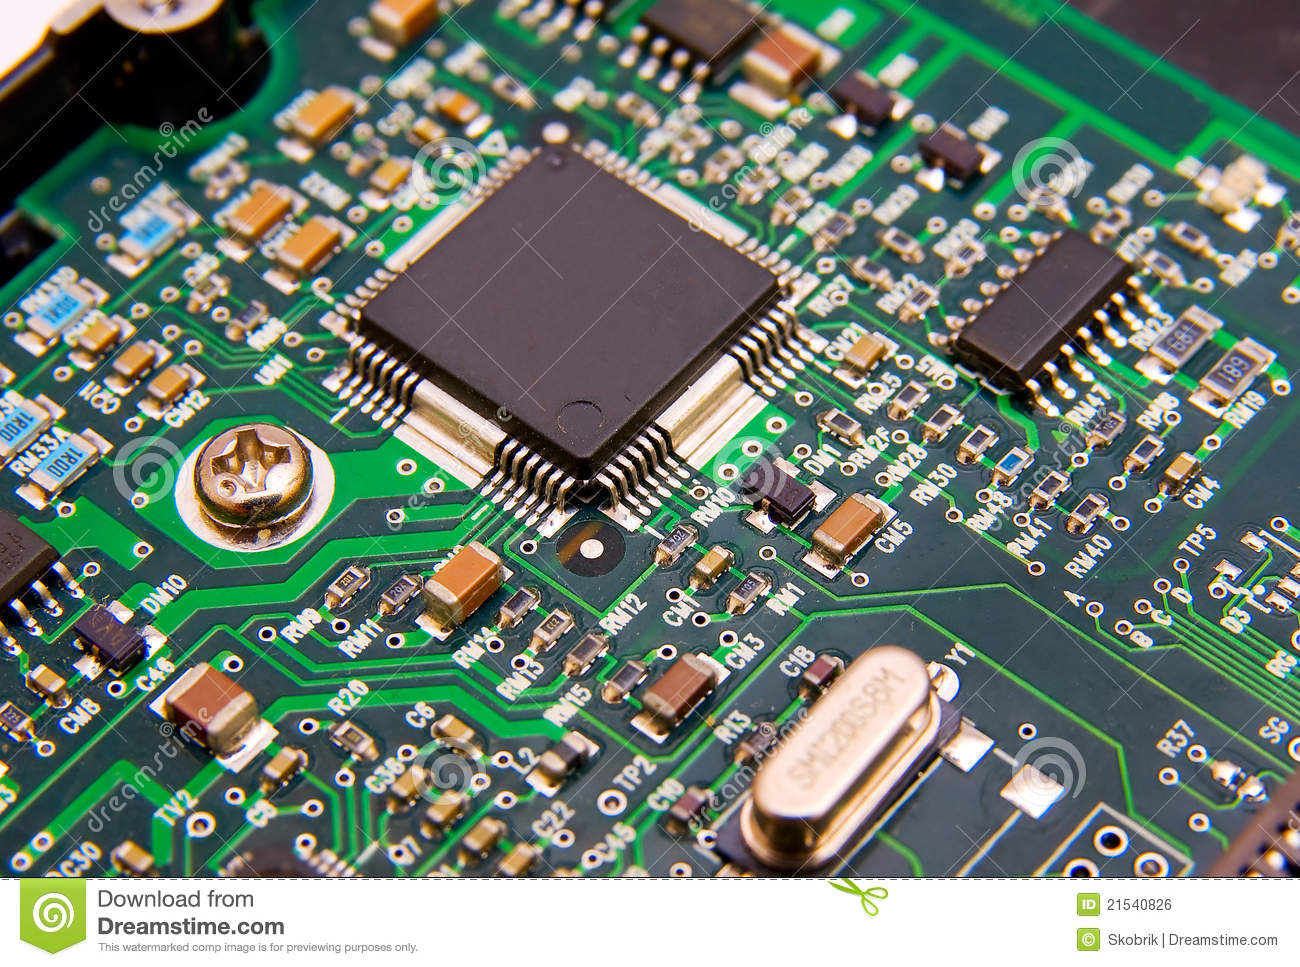 Electrical Circuit Board Kce Dc 0 F2 94v Your Iphone 6 Into A Moeco Tokyo Railway Electric Electronic Stock Photo Image Of Microchip 21540826